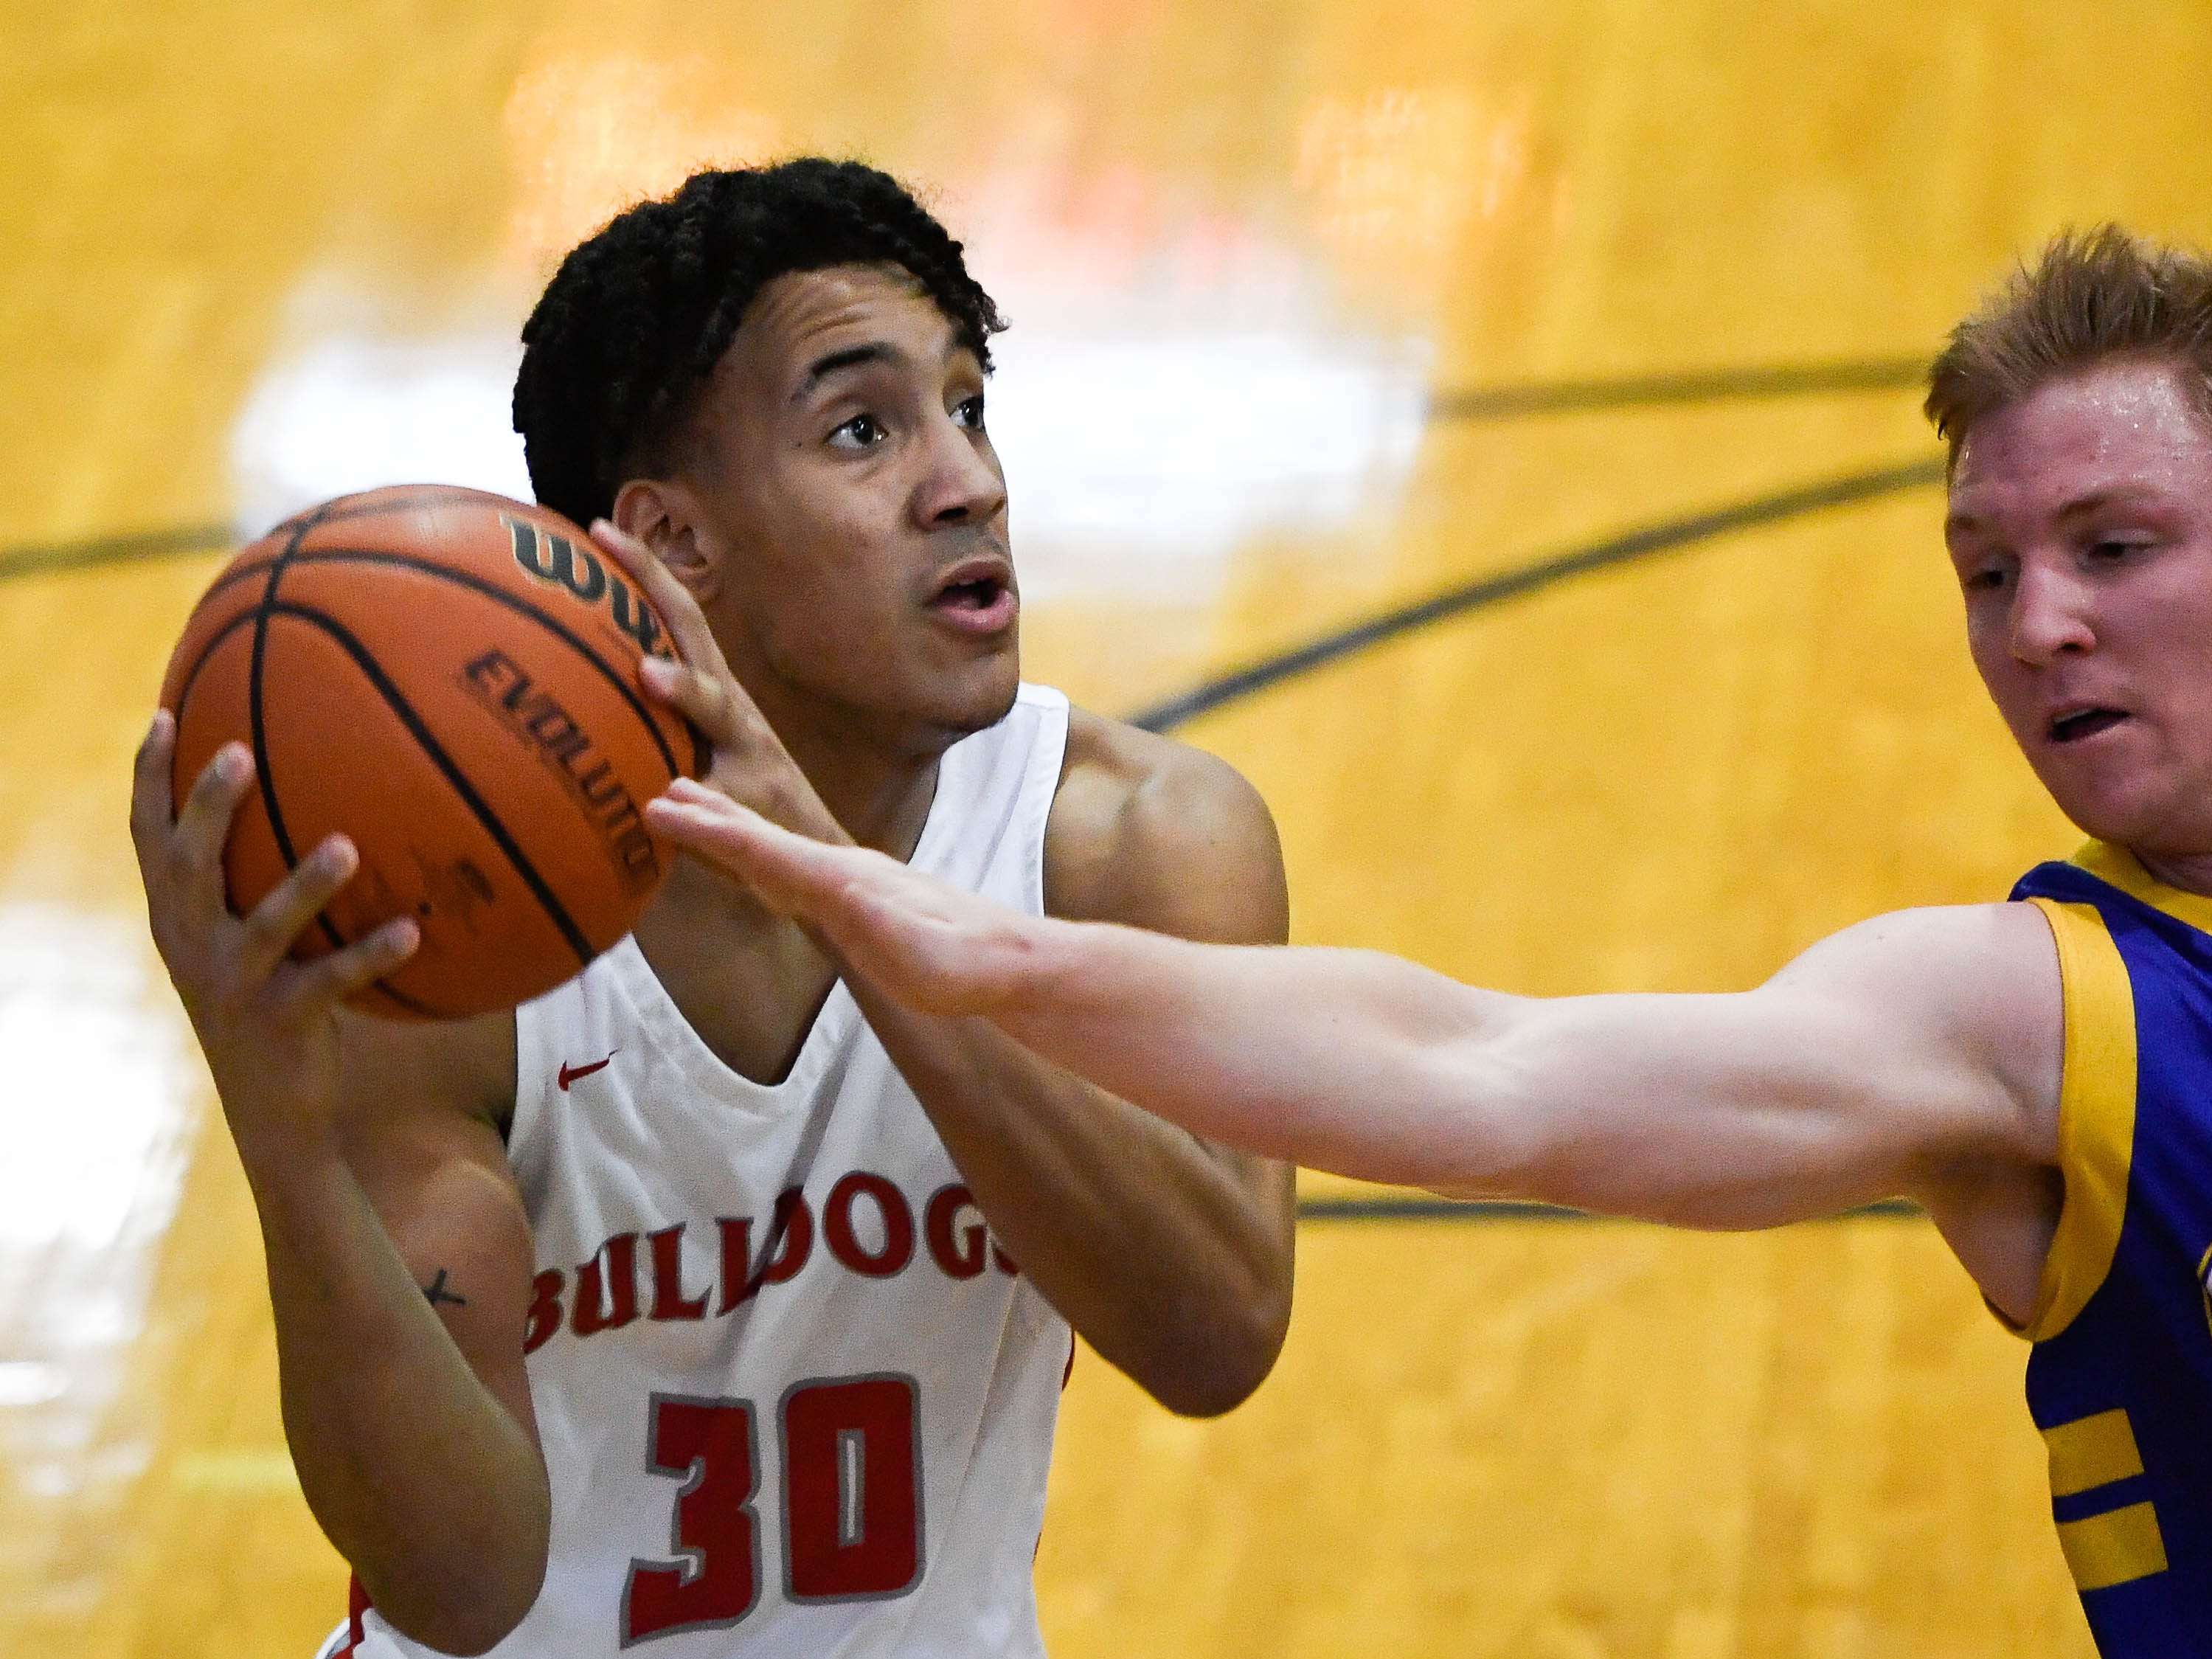 Bosse's Donovan Mcneal (30) looks to shoot under defensive pressure from Castle's Brycen Moore (30) as the Castle Knights play the Bosse Bulldogs in the Southern Indiana Athletic Conference semi-finals at Central High Thursday, January 10, 2019.